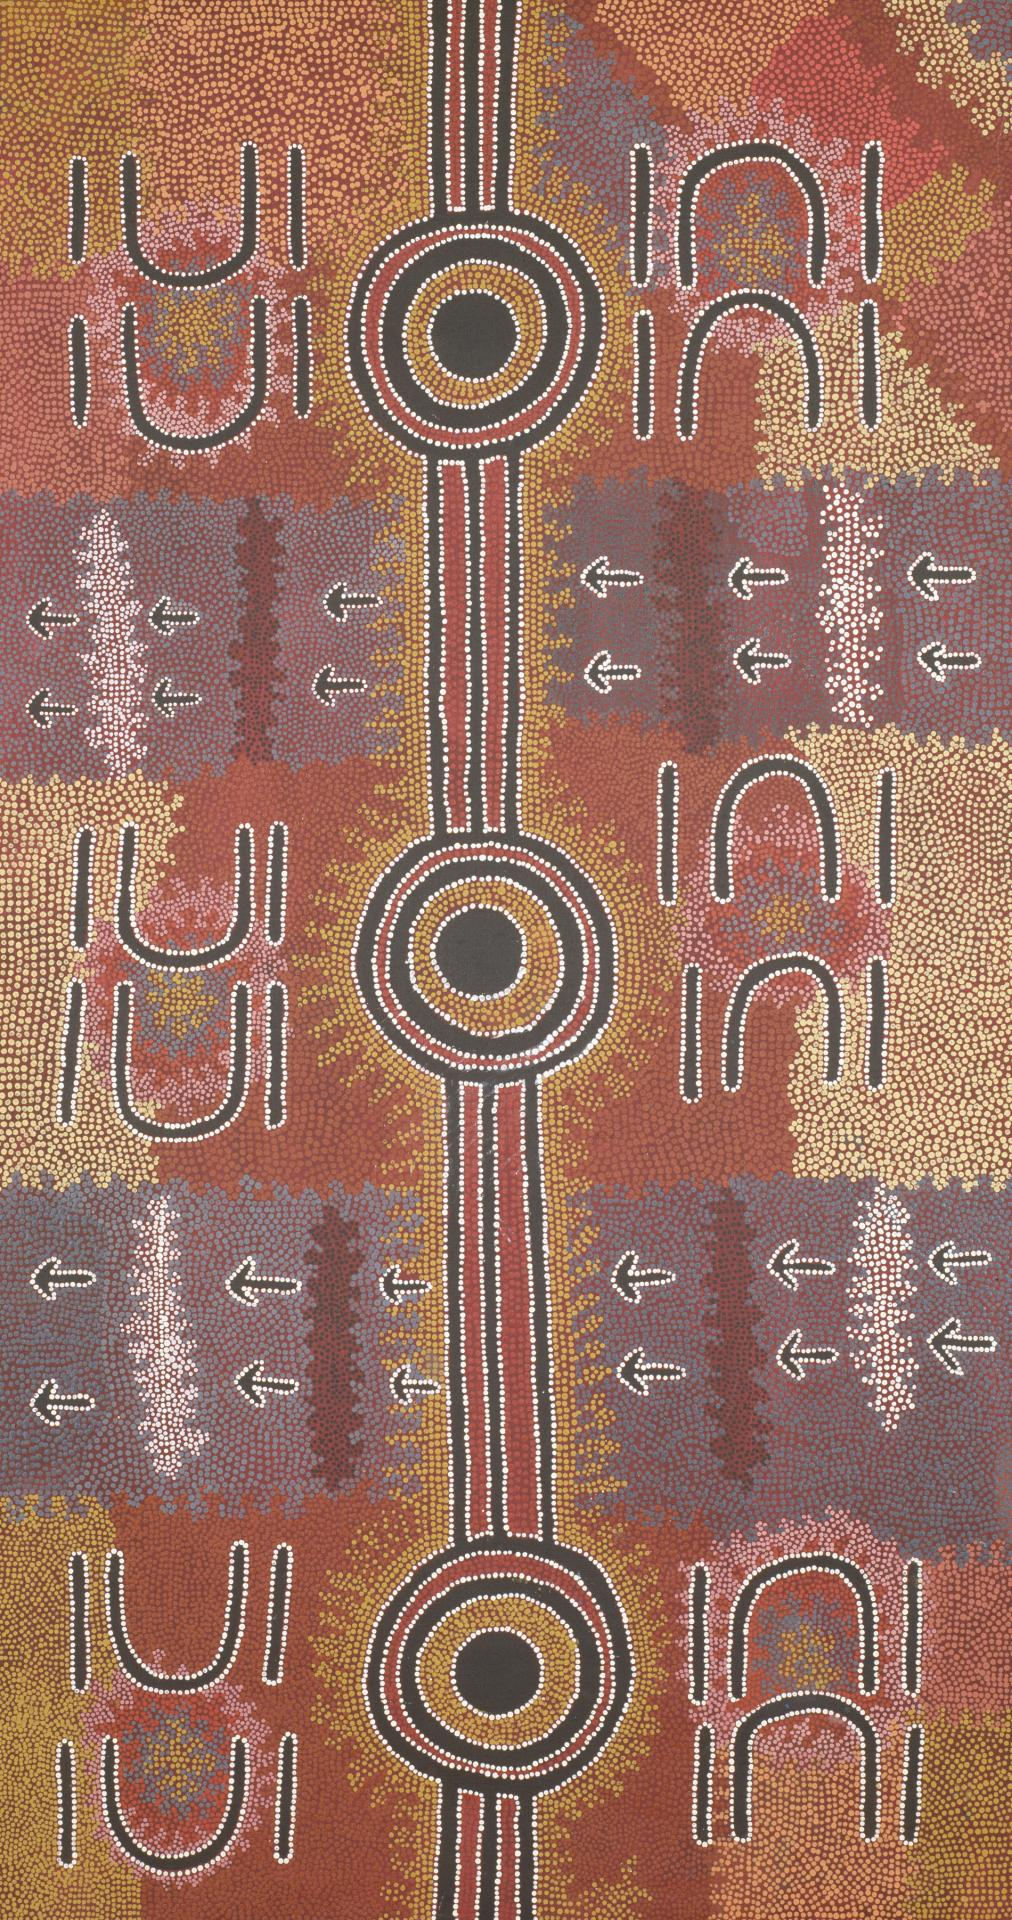 Warlukurlangu manu yankirri Jukurrpa (Fire country and emu Dreaming)